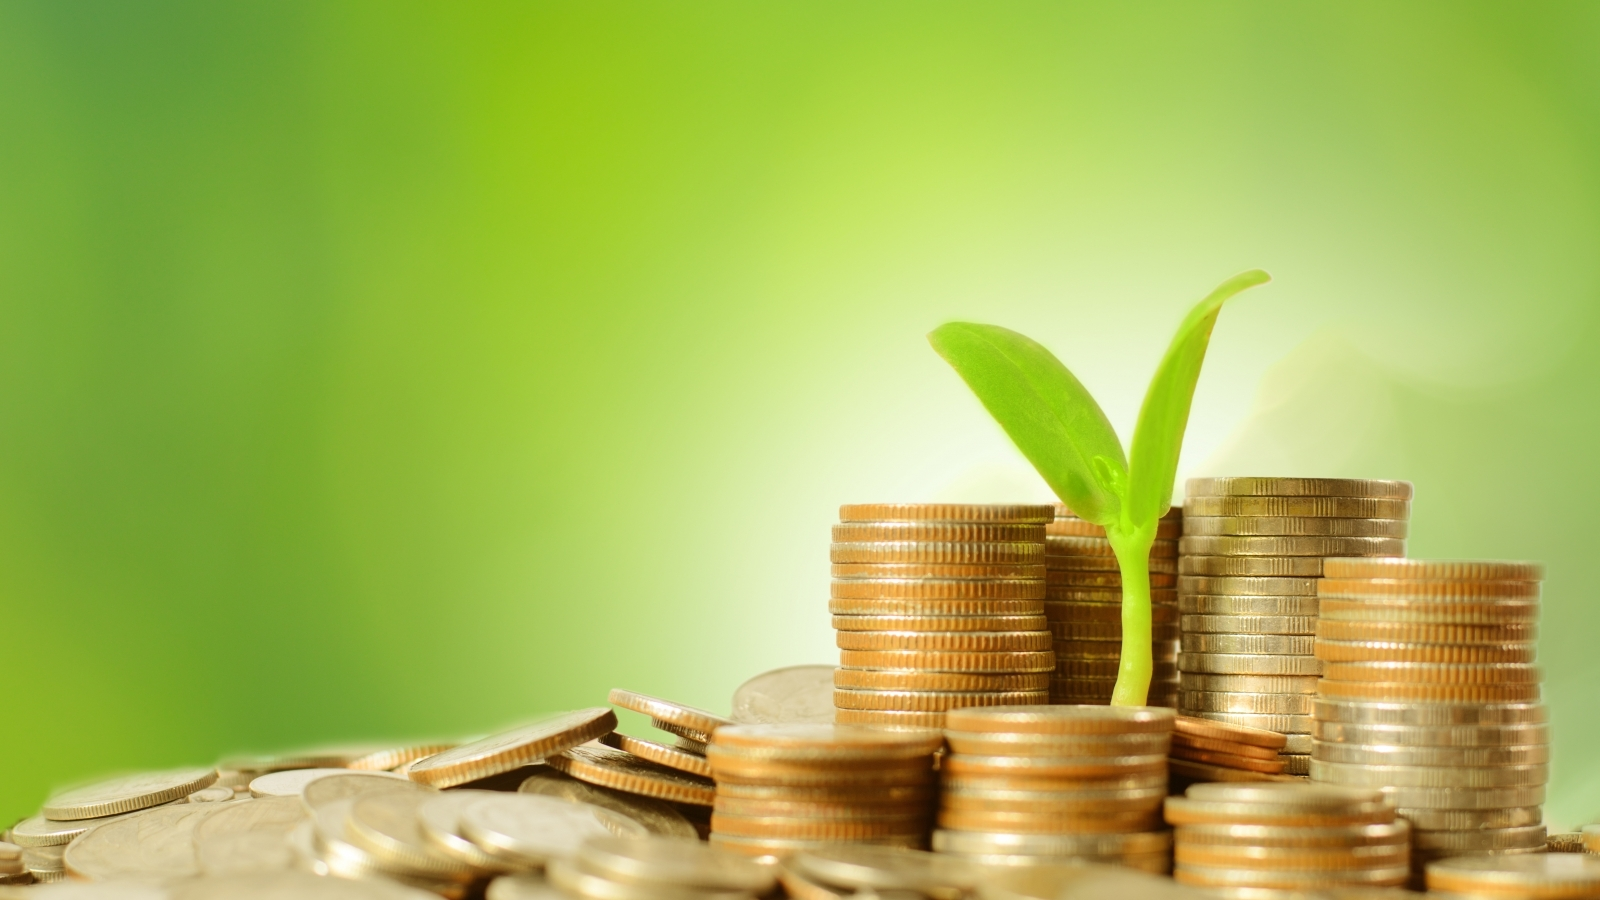 Growth of green finance